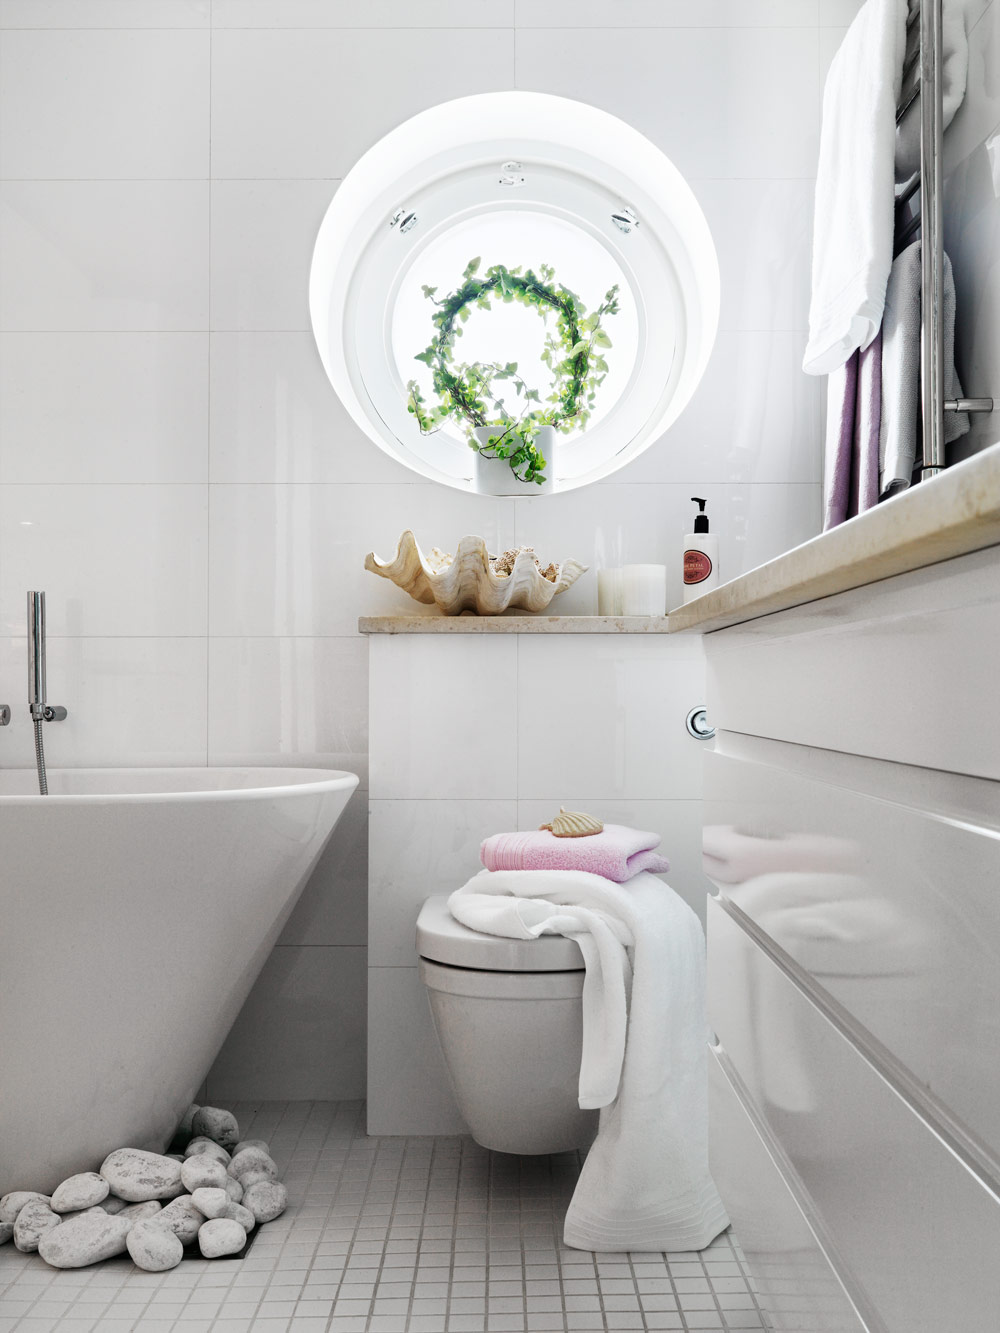 Stylish small bathroom with an unusual decor digsdigs for Bathtub ideas for small bathrooms